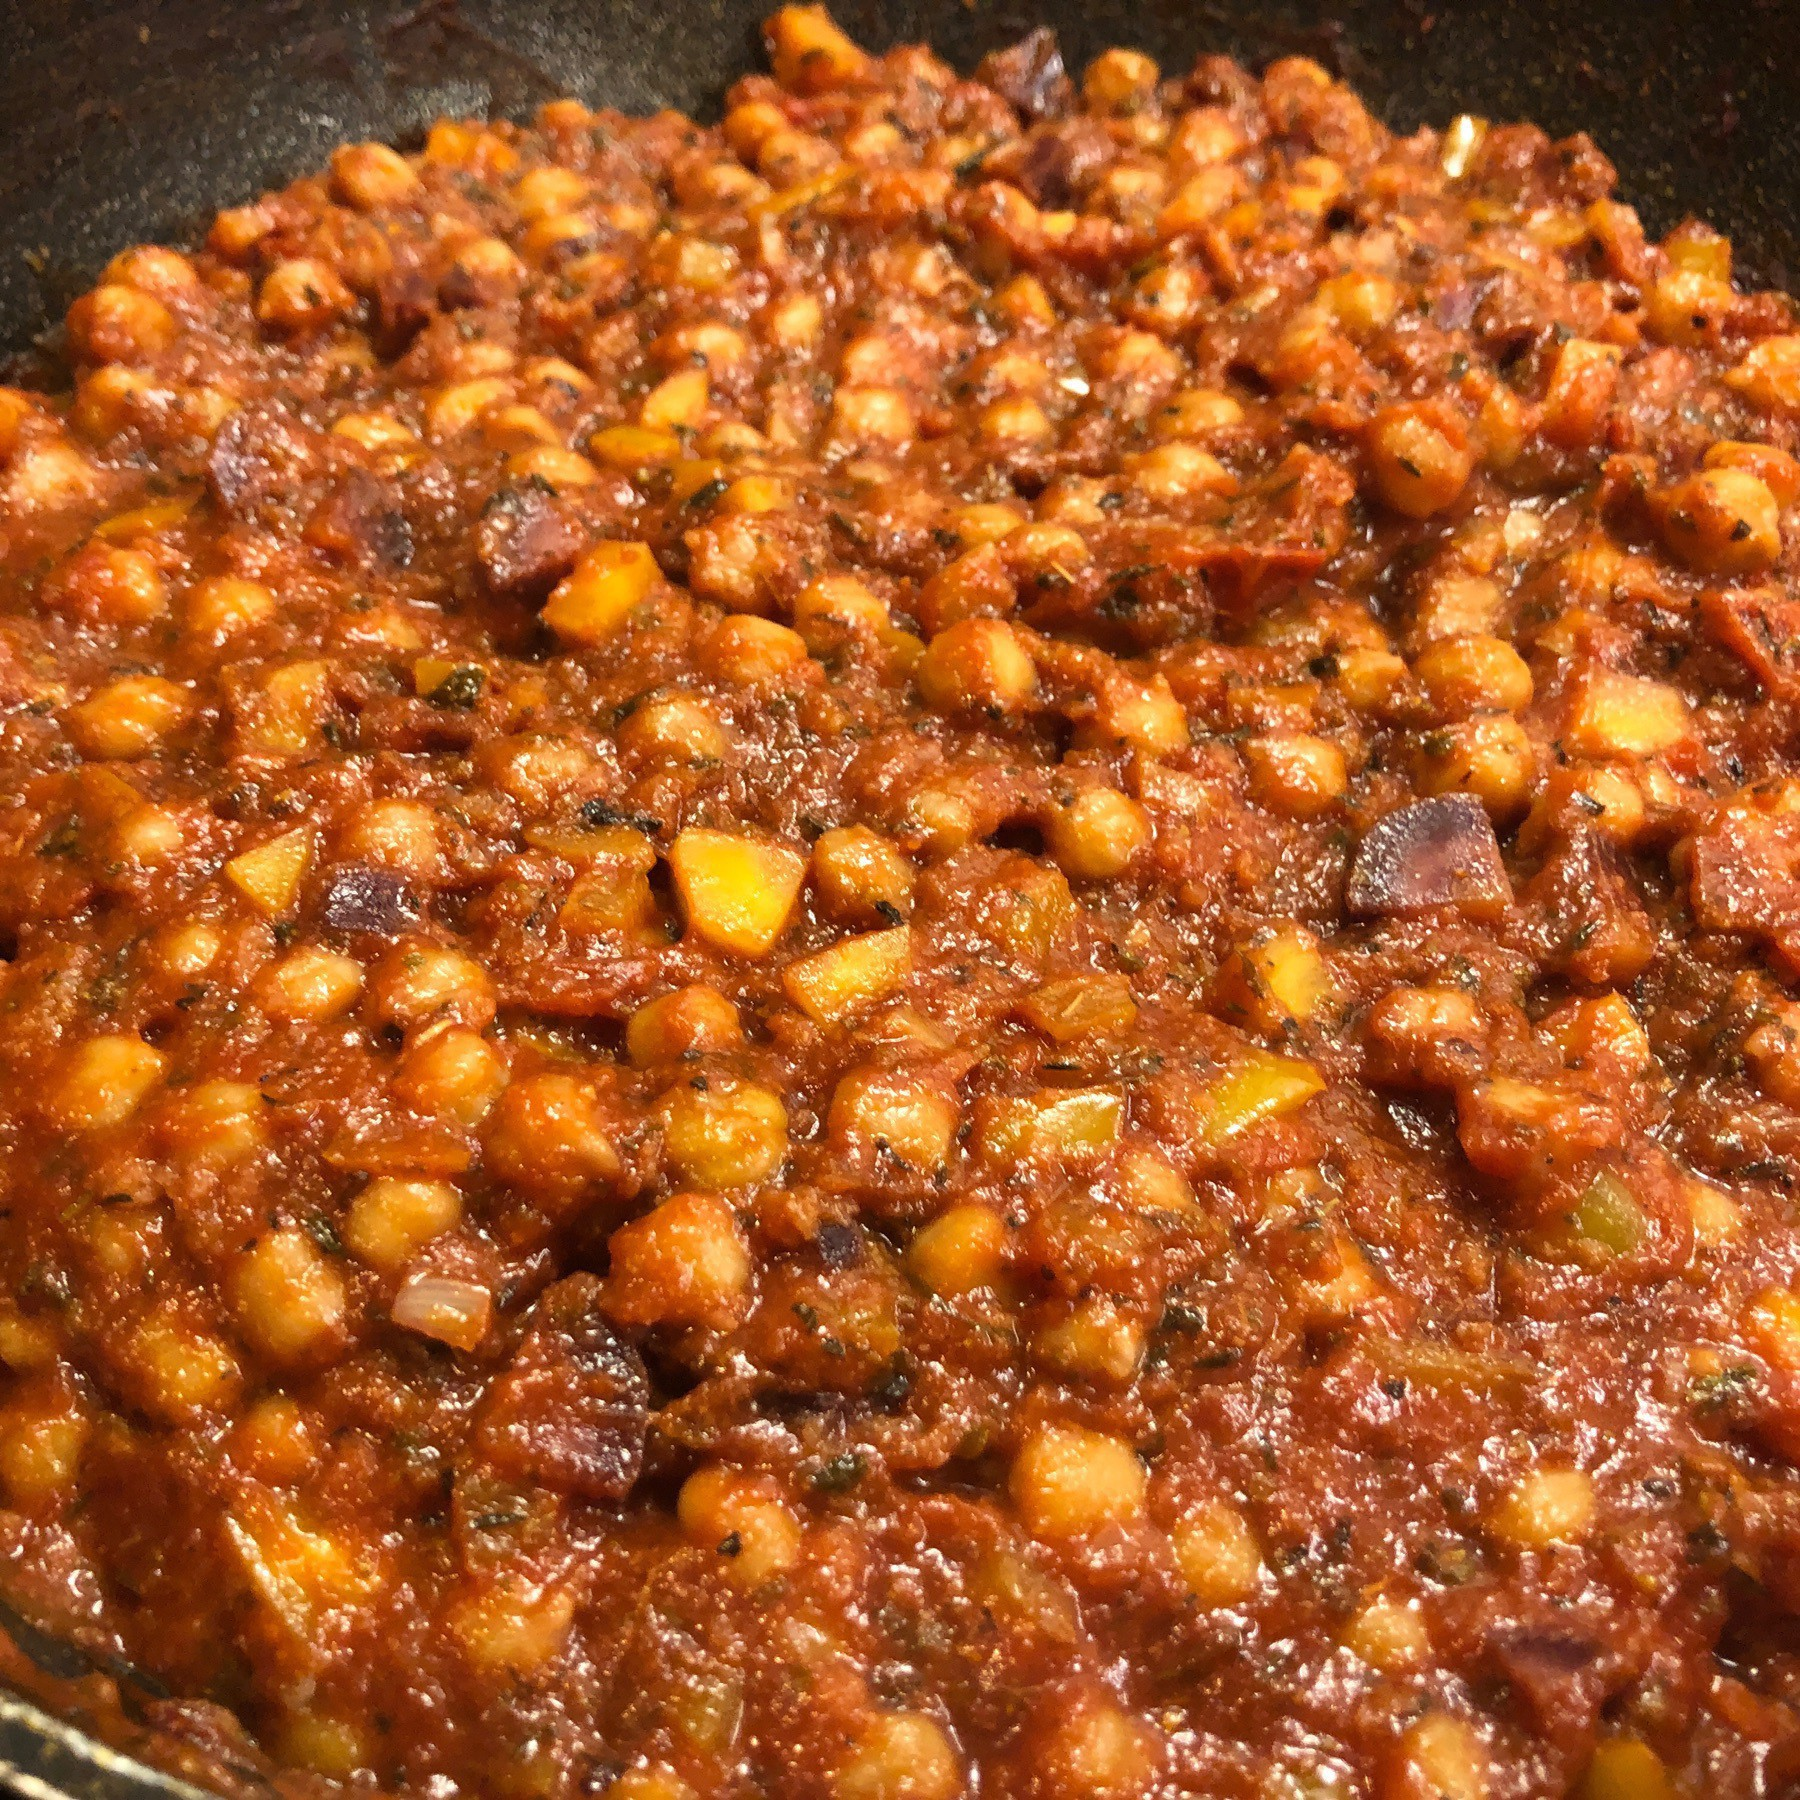 Tomato sauce with chickpeas.